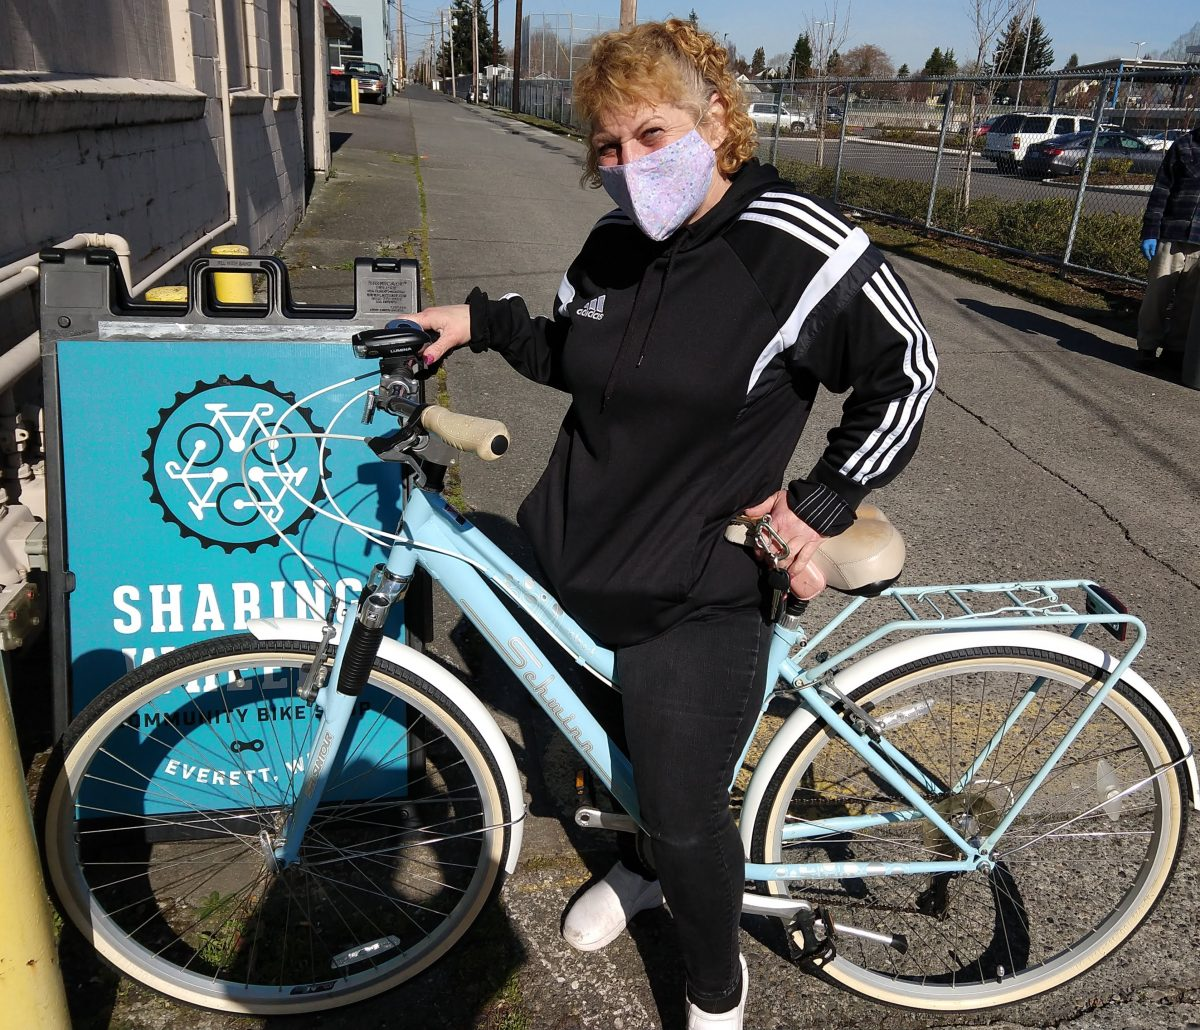 Woman on a cruiser bike smiles under her facemask